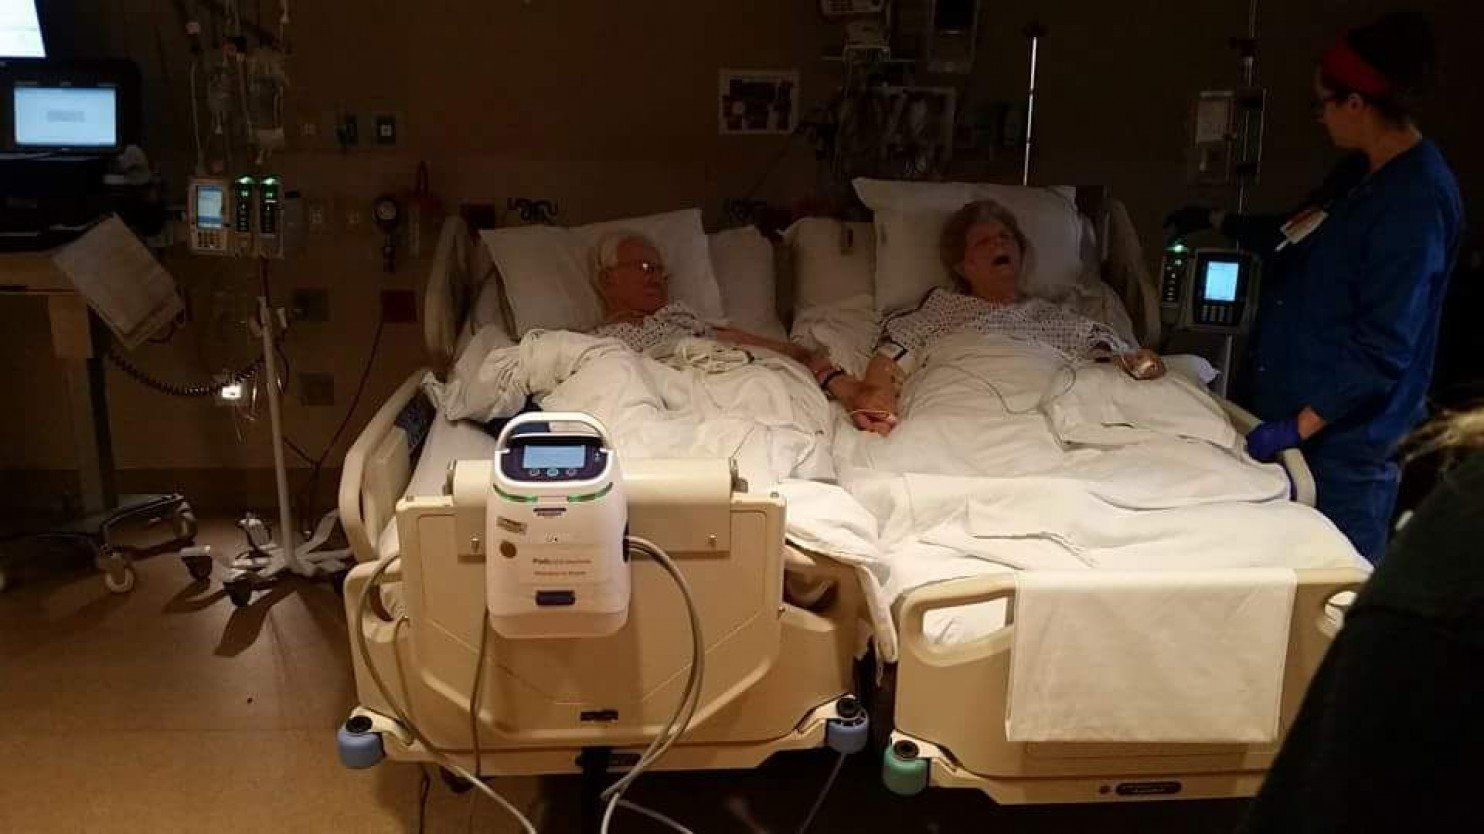 Couple Married 63 Years Dies Hours Apart: 'I Know They Are